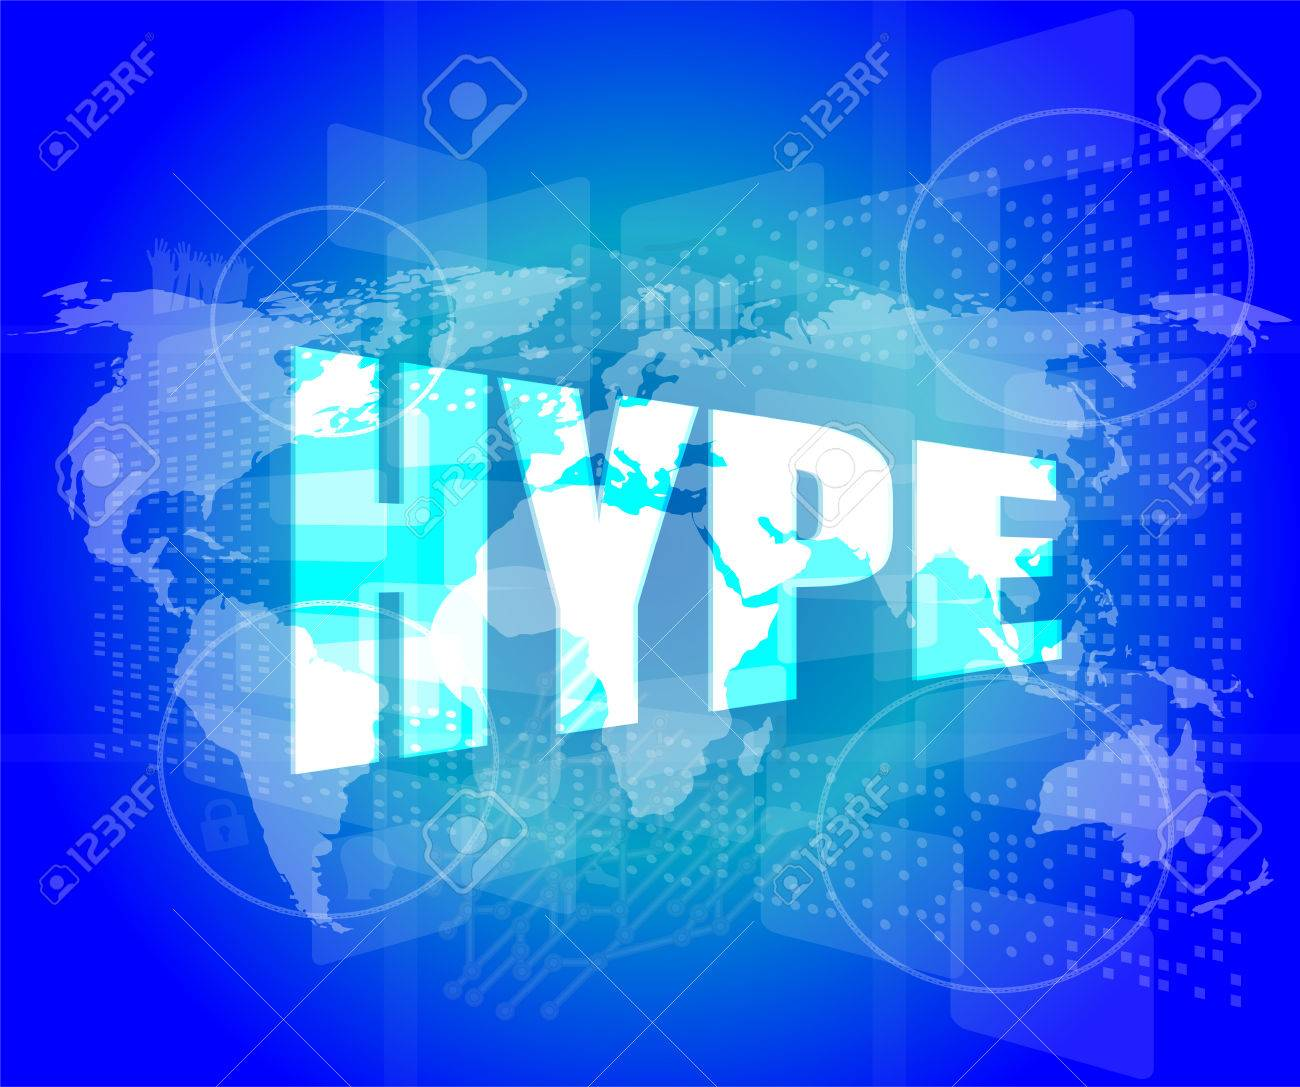 Hype word on digital screen background with world map stock photo hype word on digital screen background with world map stock photo 33348794 gumiabroncs Choice Image